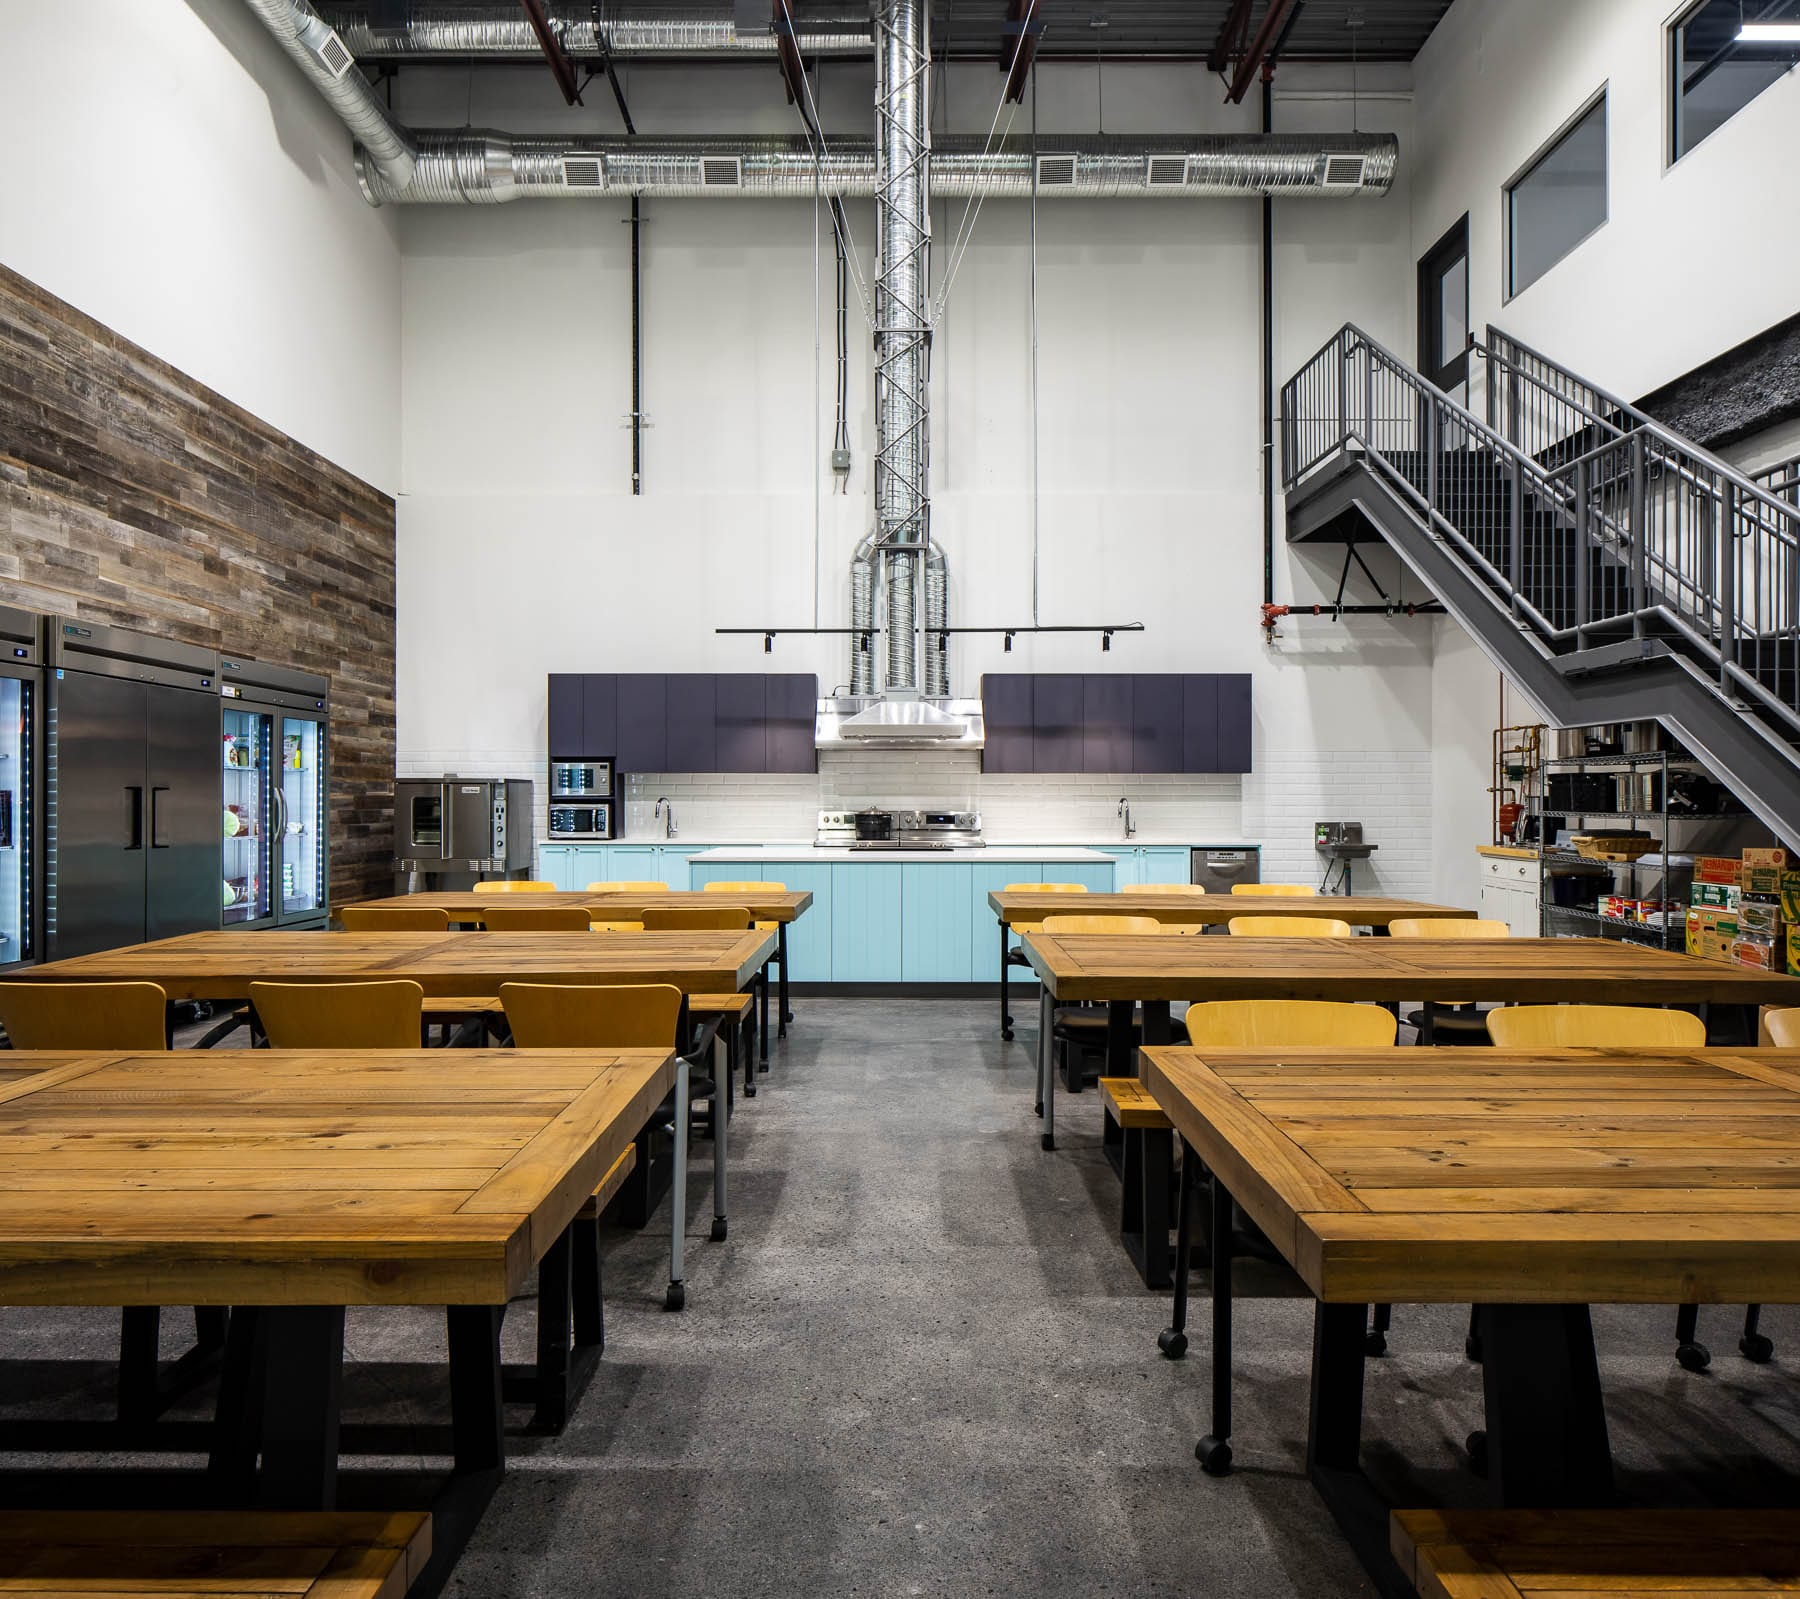 Burnaby Greater Vancouver Food Bank Teaching Kitchen used for events and meal preparation workshops